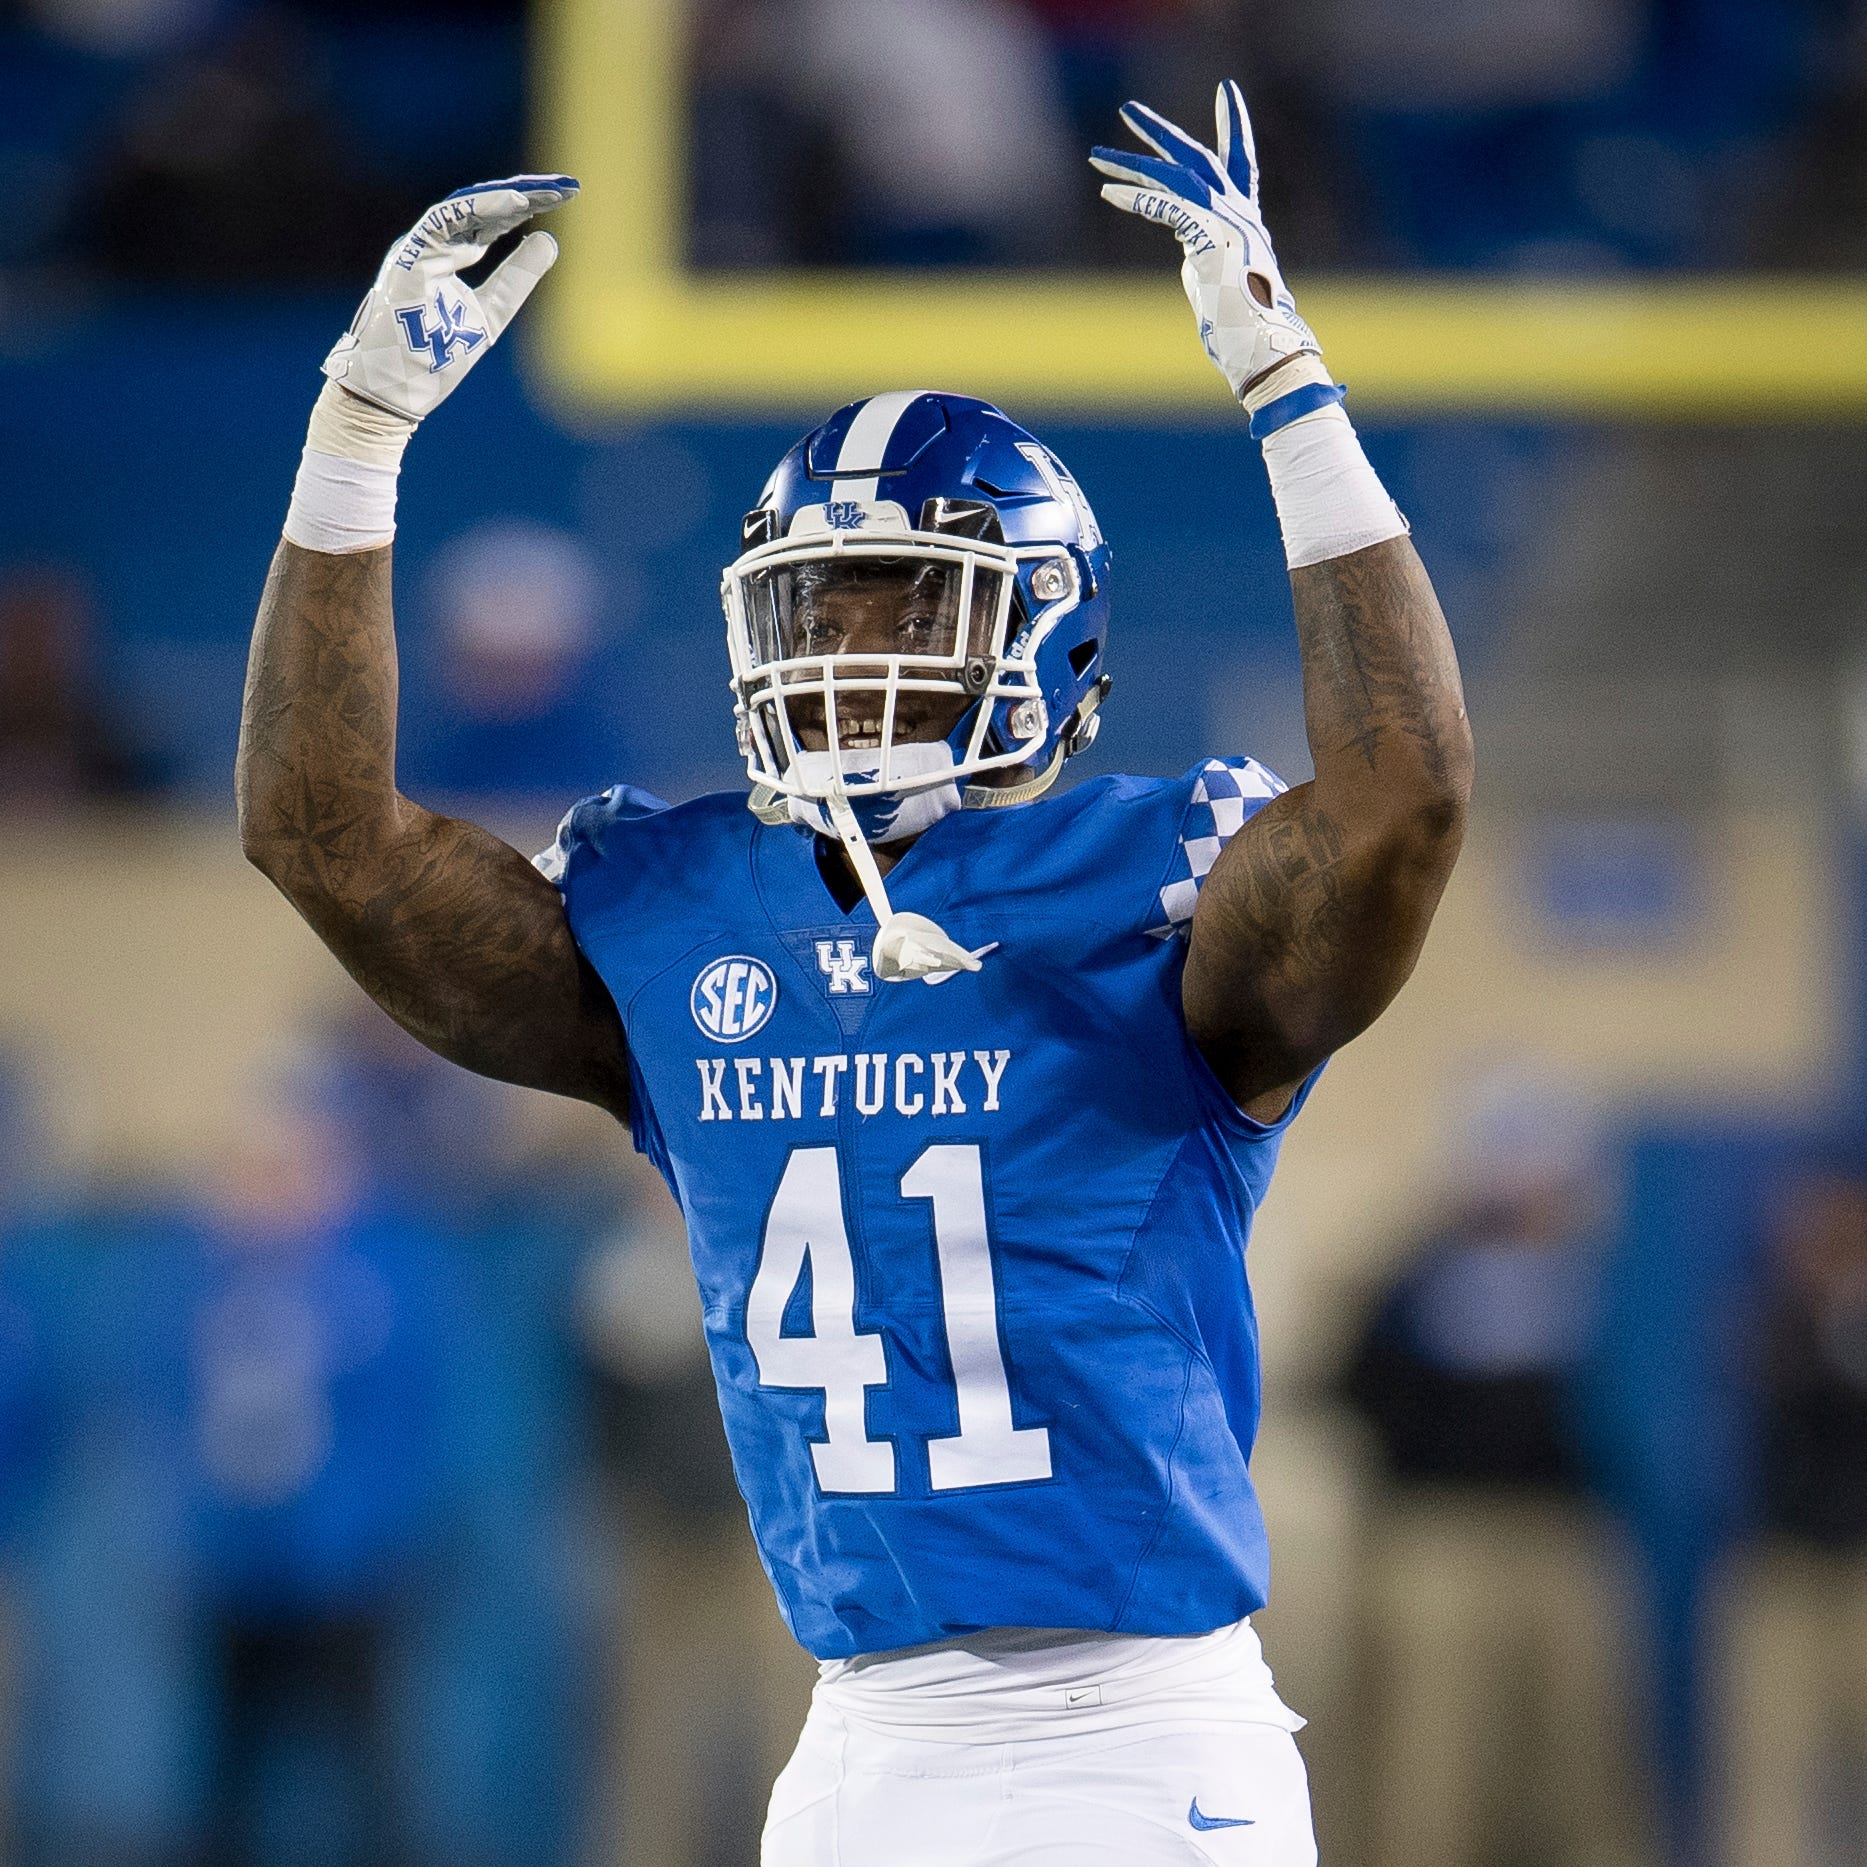 Eight prospect possibilities for Lions at No. 8 in the NFL Draft